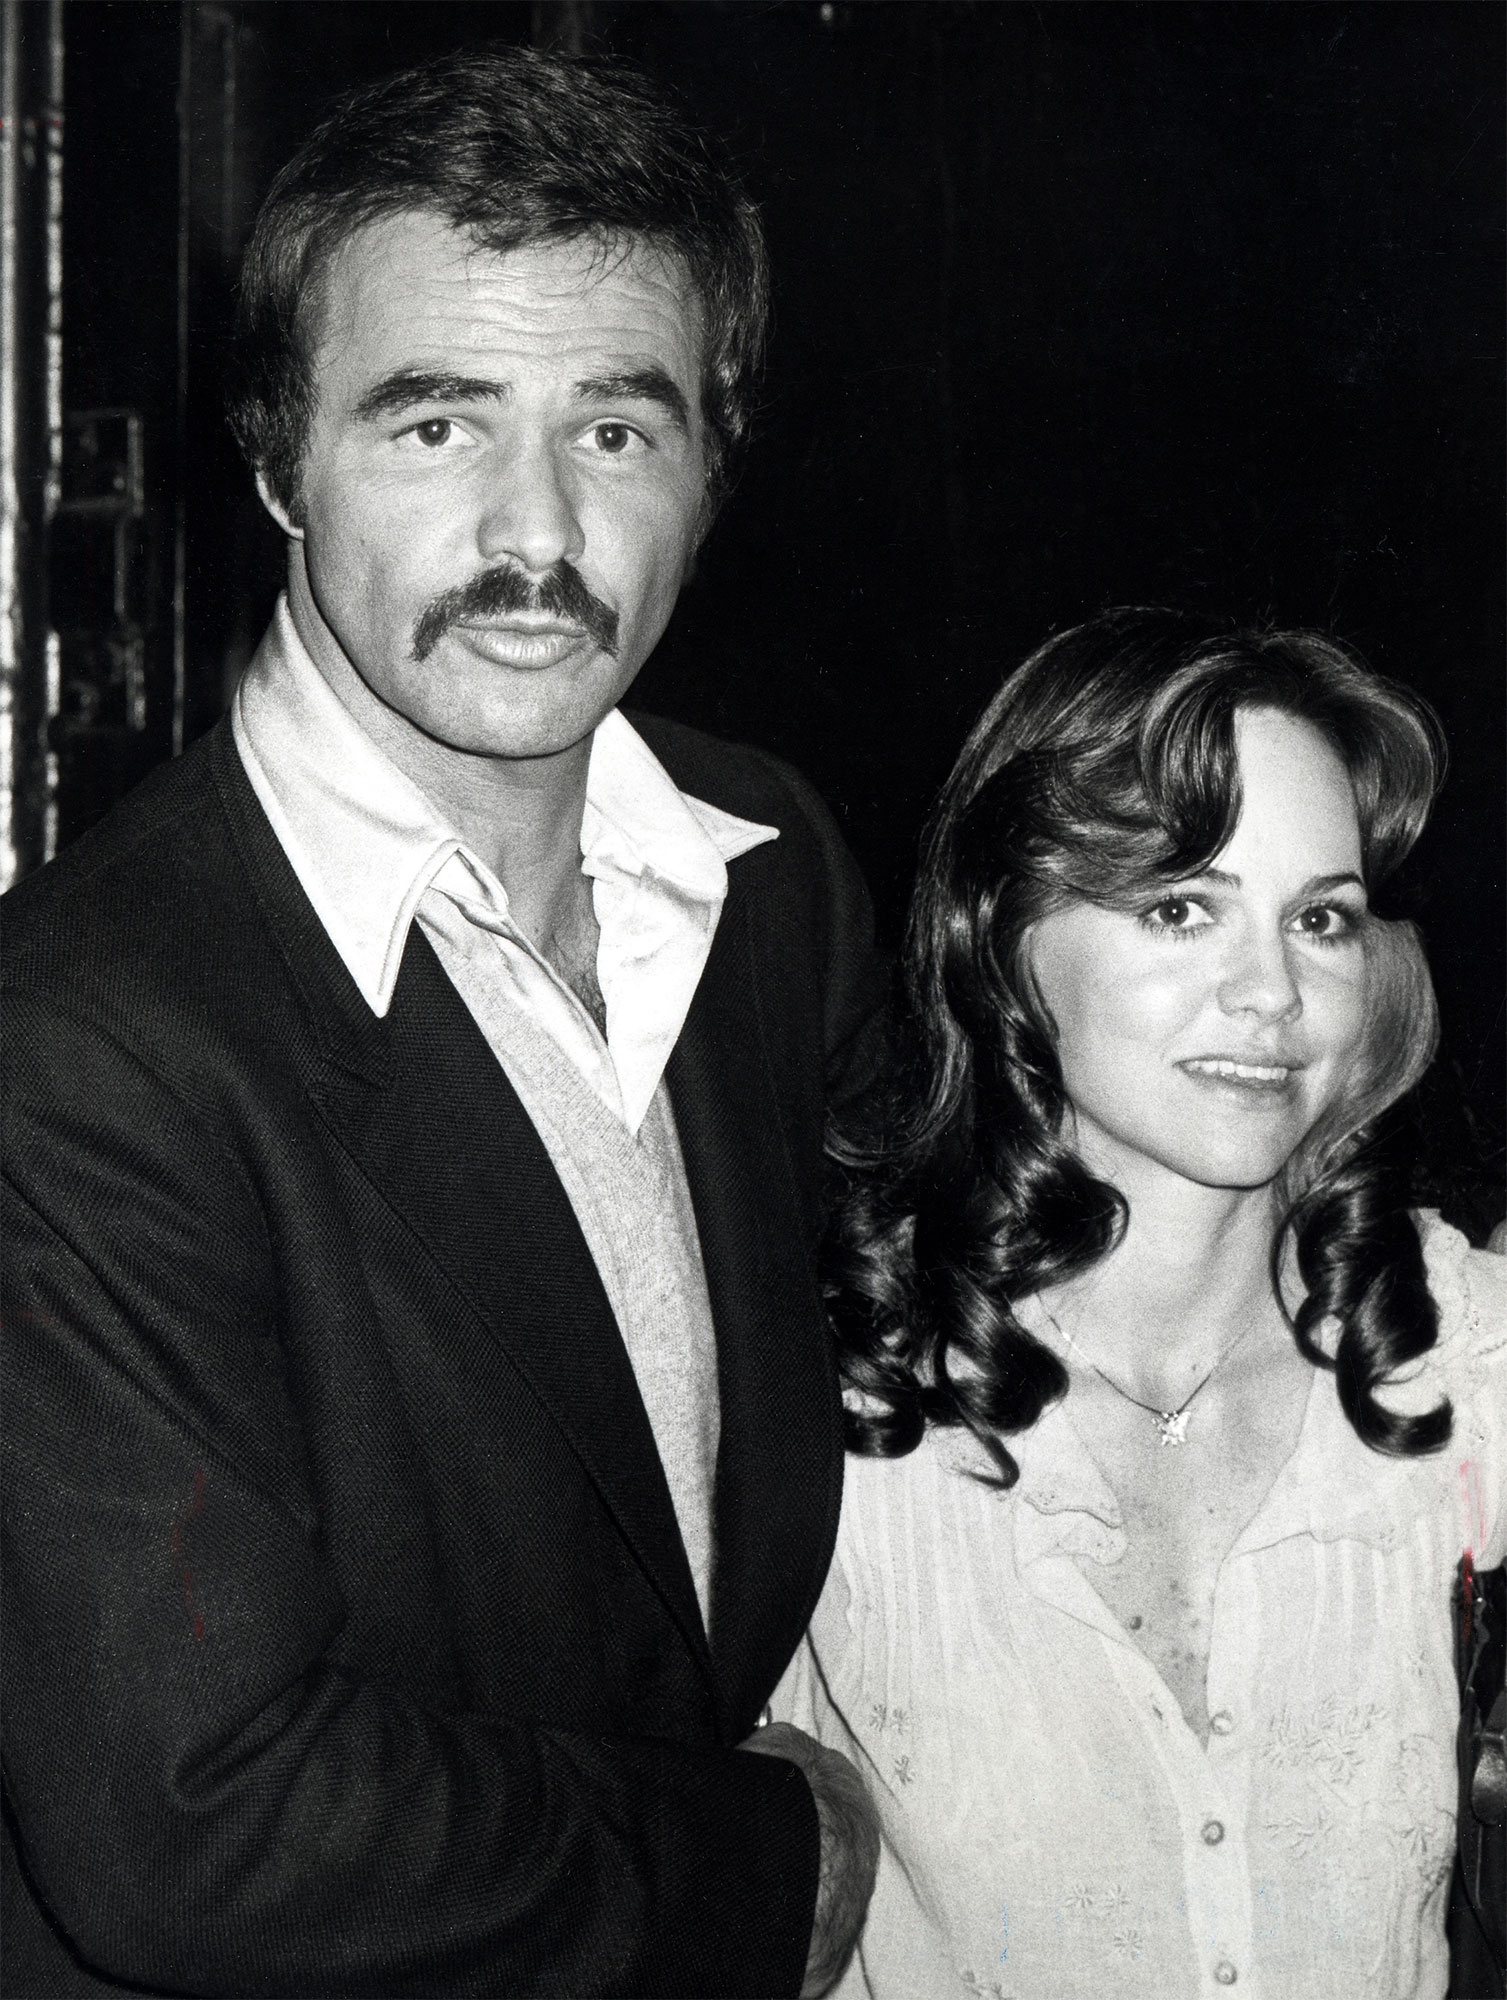 Bert Reynolds and Sally Field Sighting at Steak Pit Restaurant - March 15, 1978